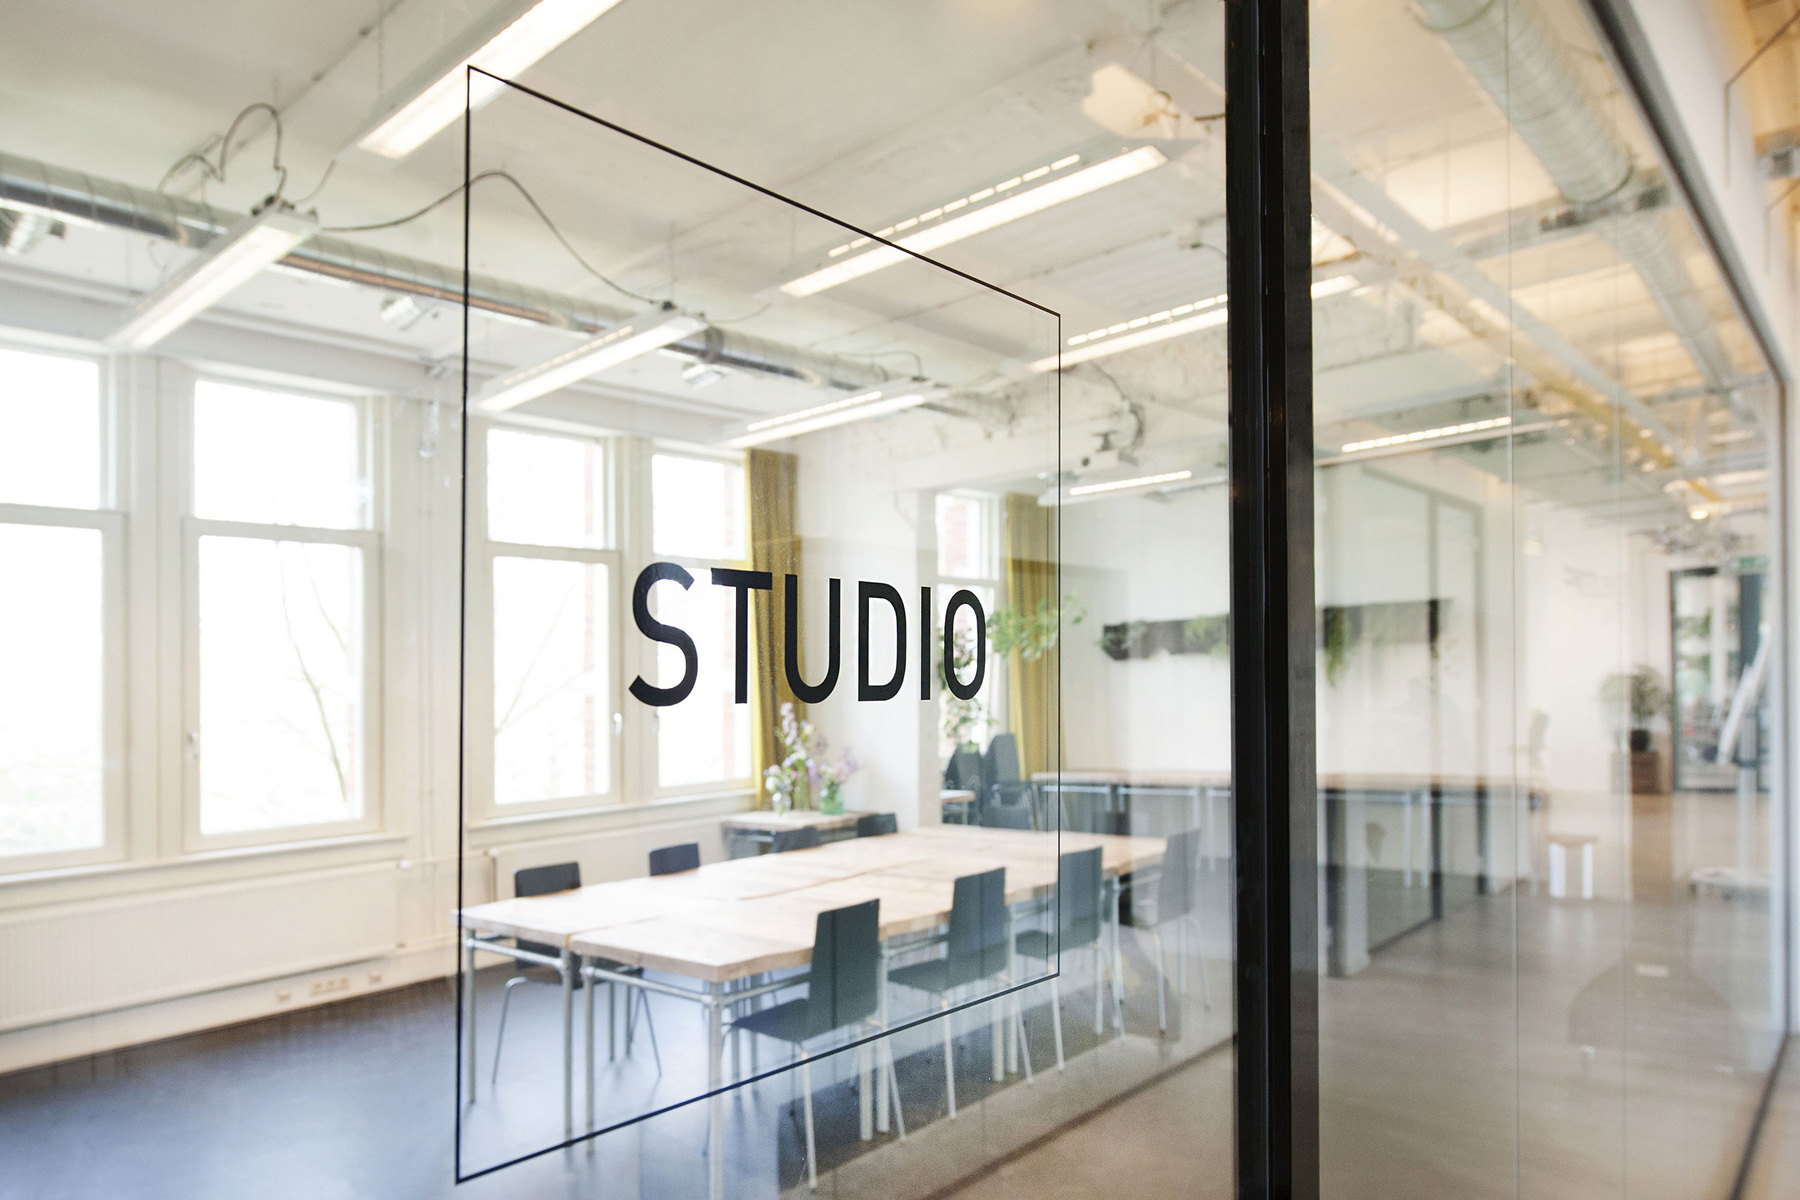 glass studio meeting room transparency business involvement interaction impact hub westerpark amsterdam